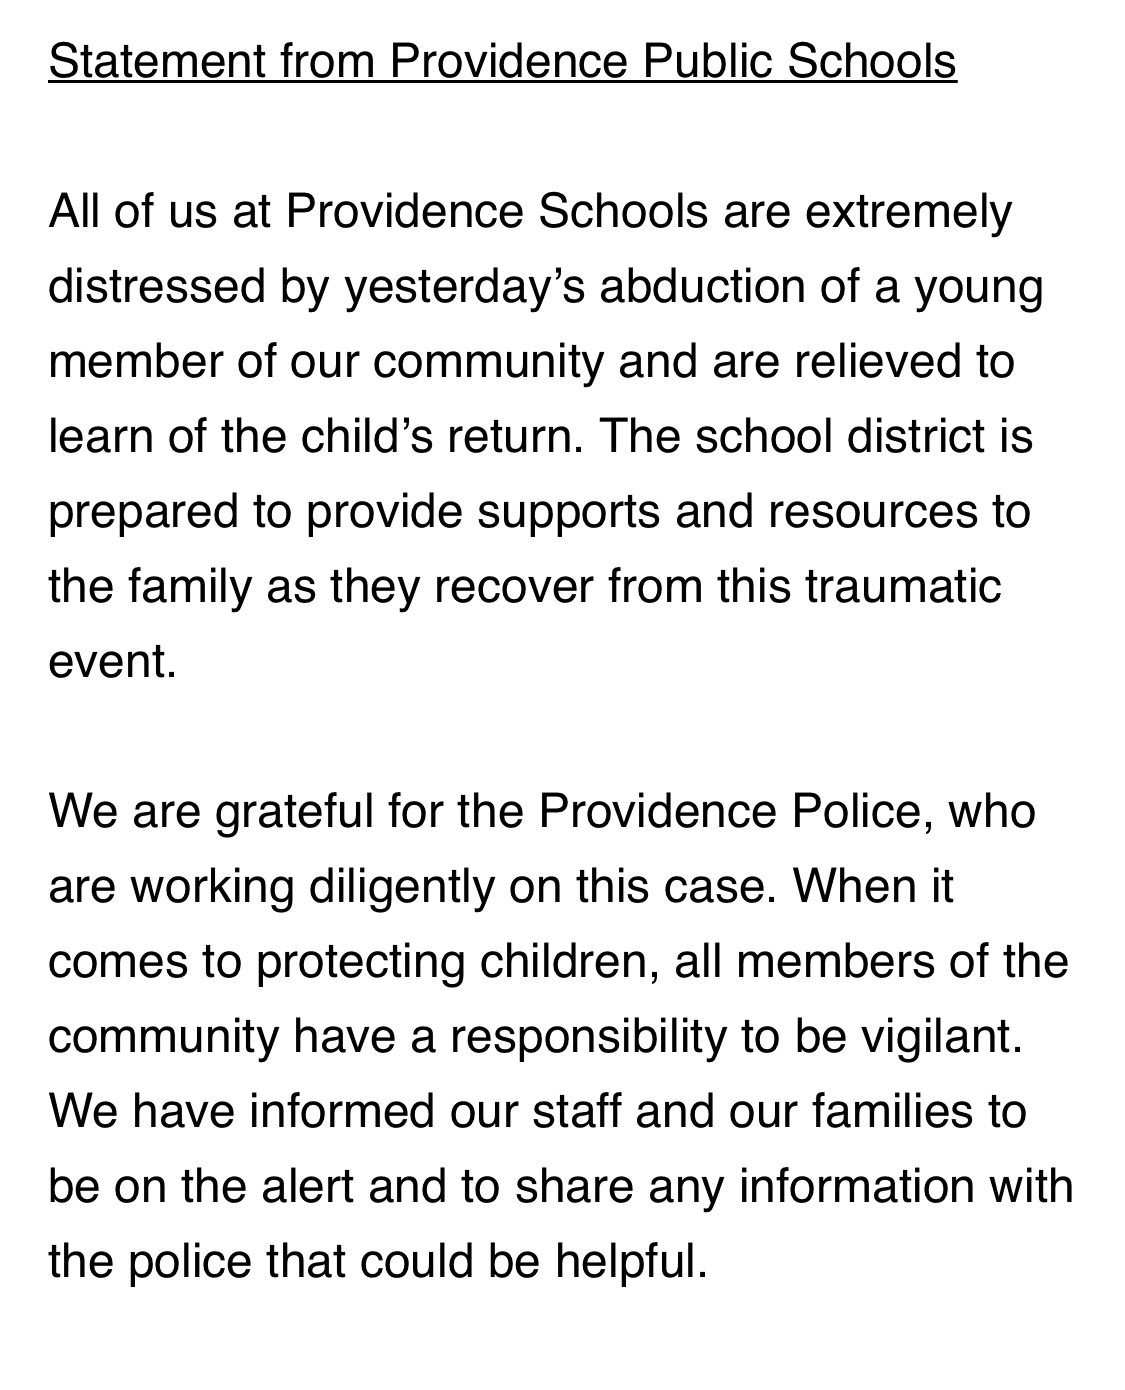 Amanda Pitts On Twitter Pvdschools Statement On Yesterday S Abduction Of A 9 Y O Girl Around 3pm The Girl Was Abducted In The Area Of Grover Merino Streets After Getting Off Of